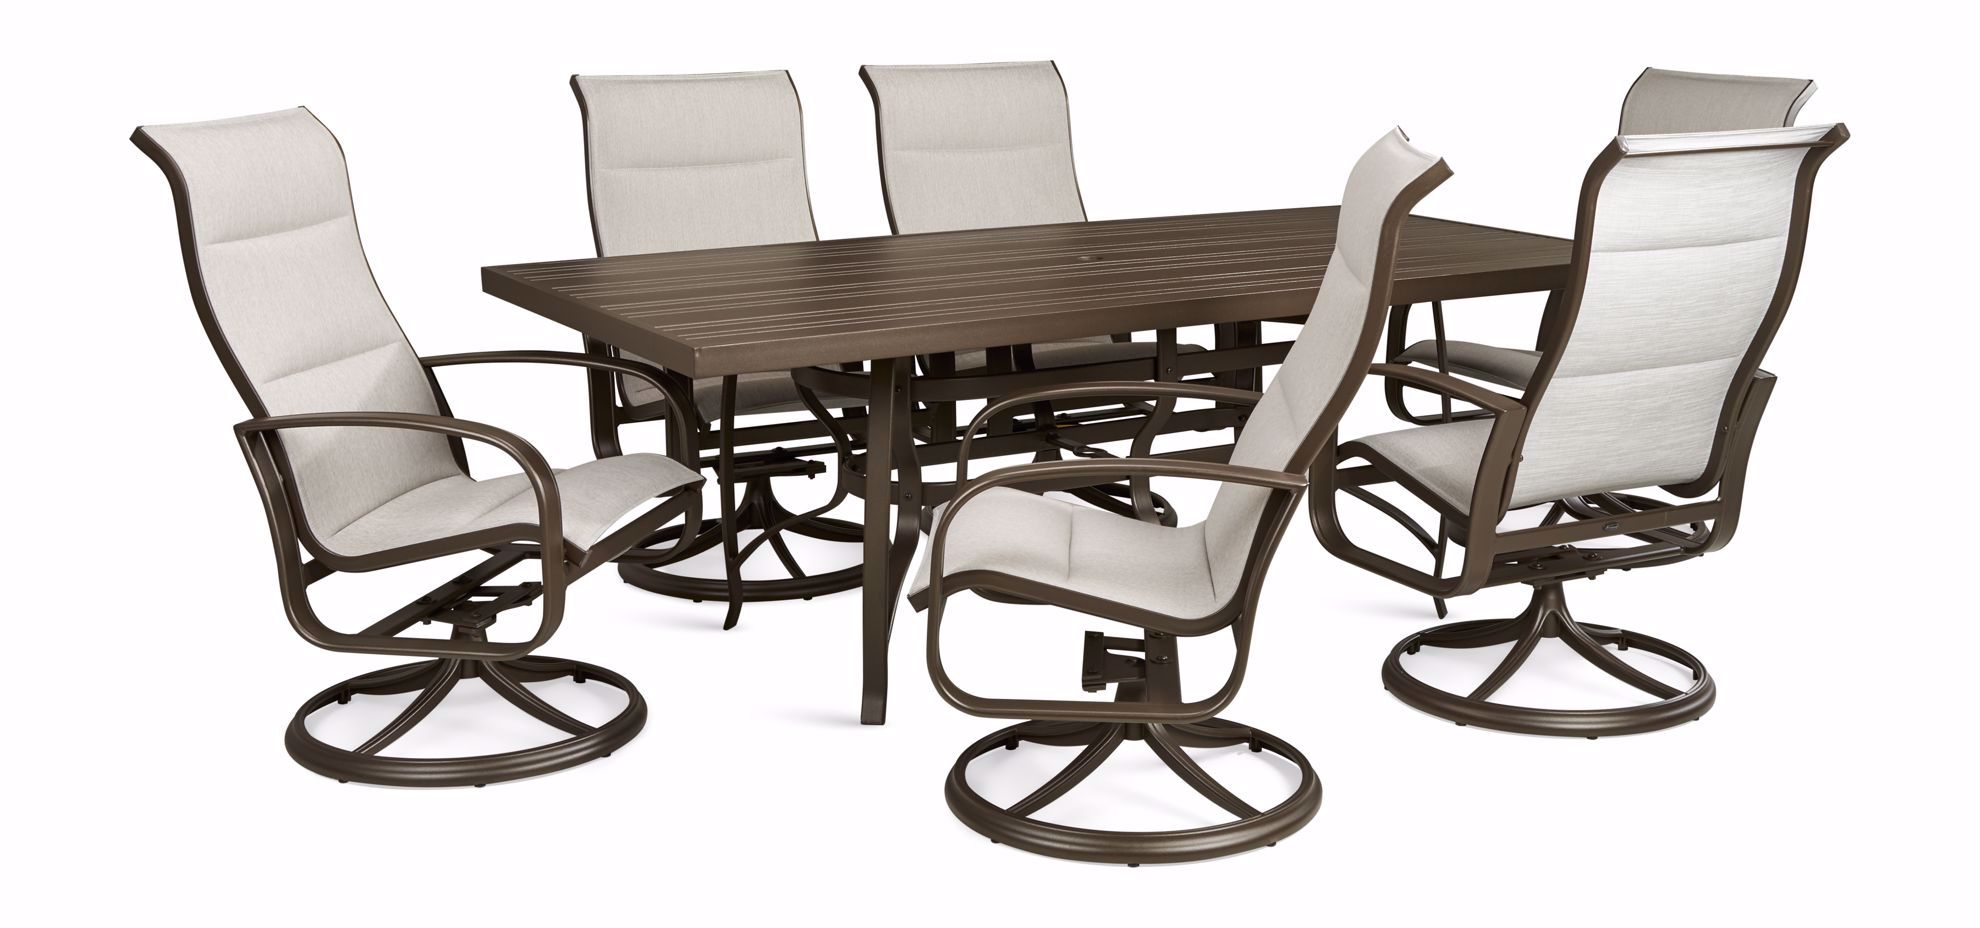 Picture of Cayman Isle Dining Table and 6 Chairs